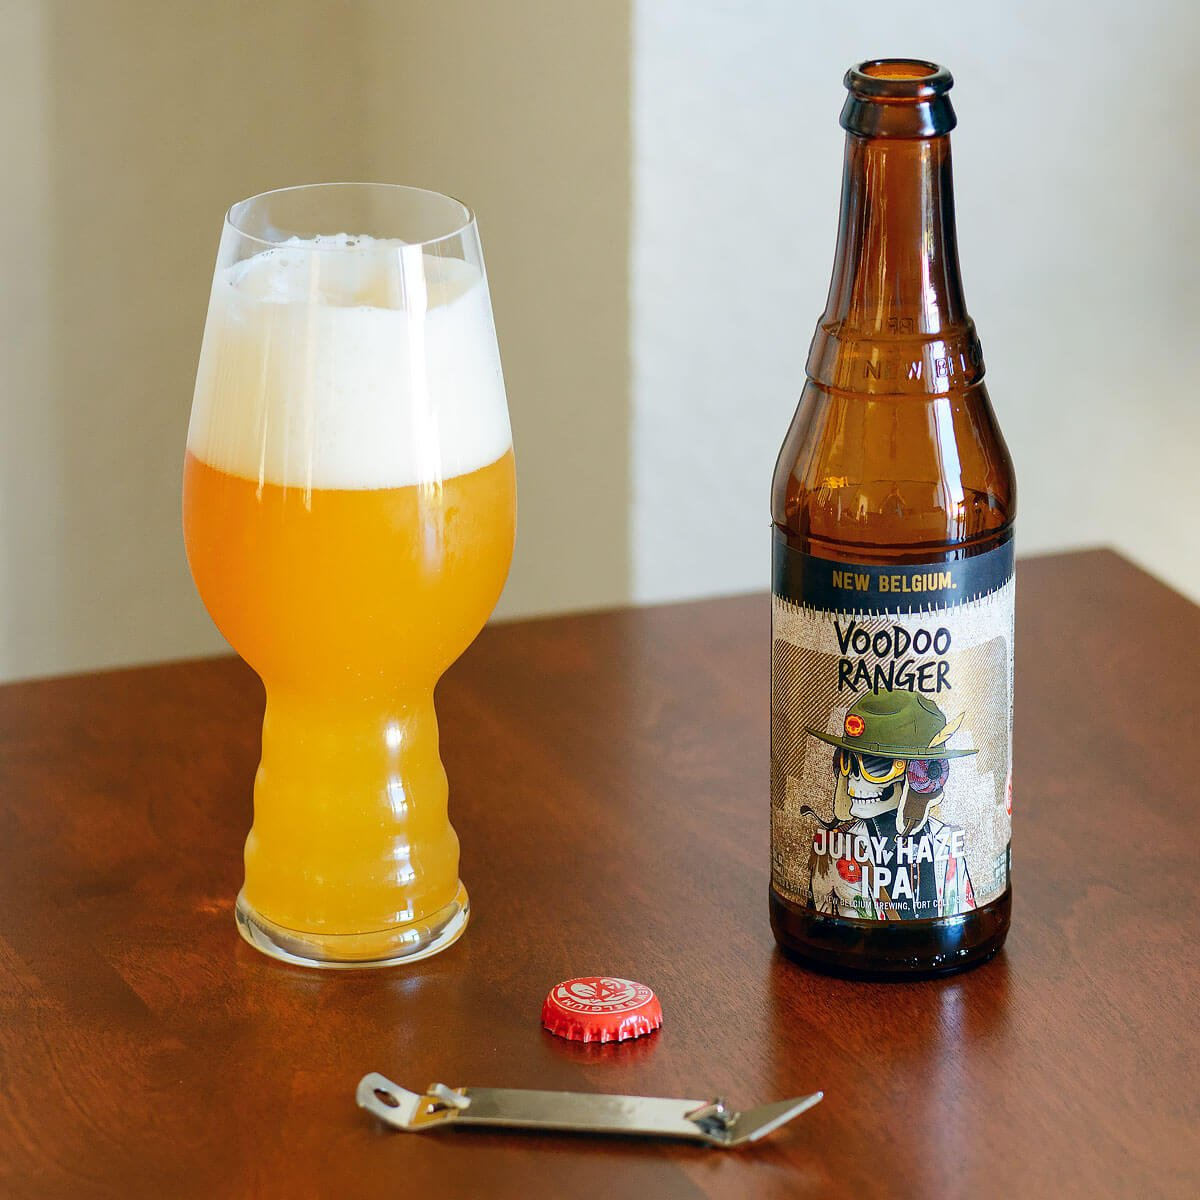 Juicy Haze IPA, an American IPA brewed in the New England style by New Belgium Brewing Company